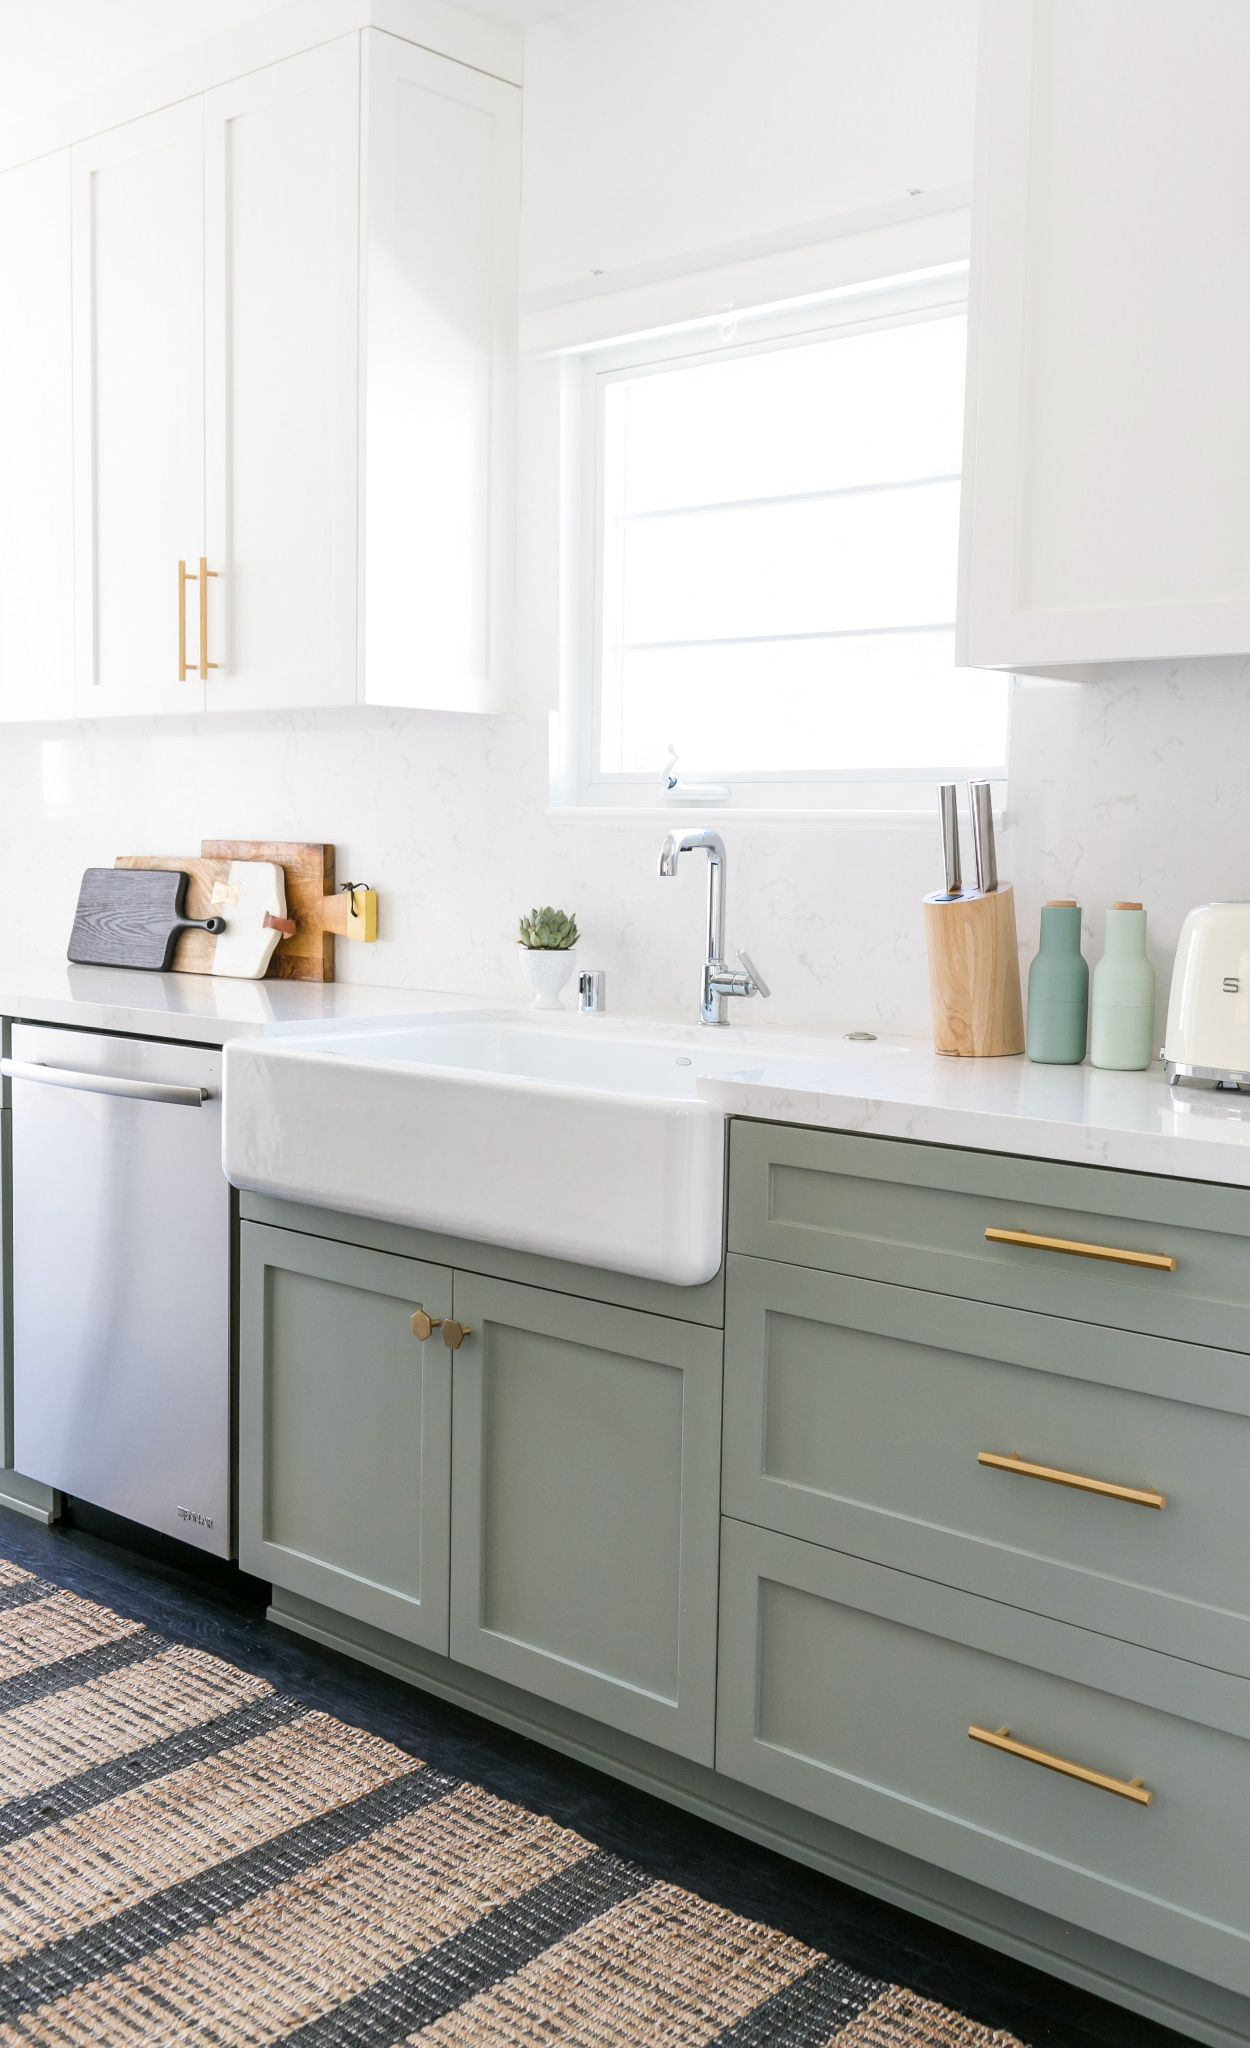 Green cabinets paired with brass accents and Cambria Torquay countertops and backsplash.